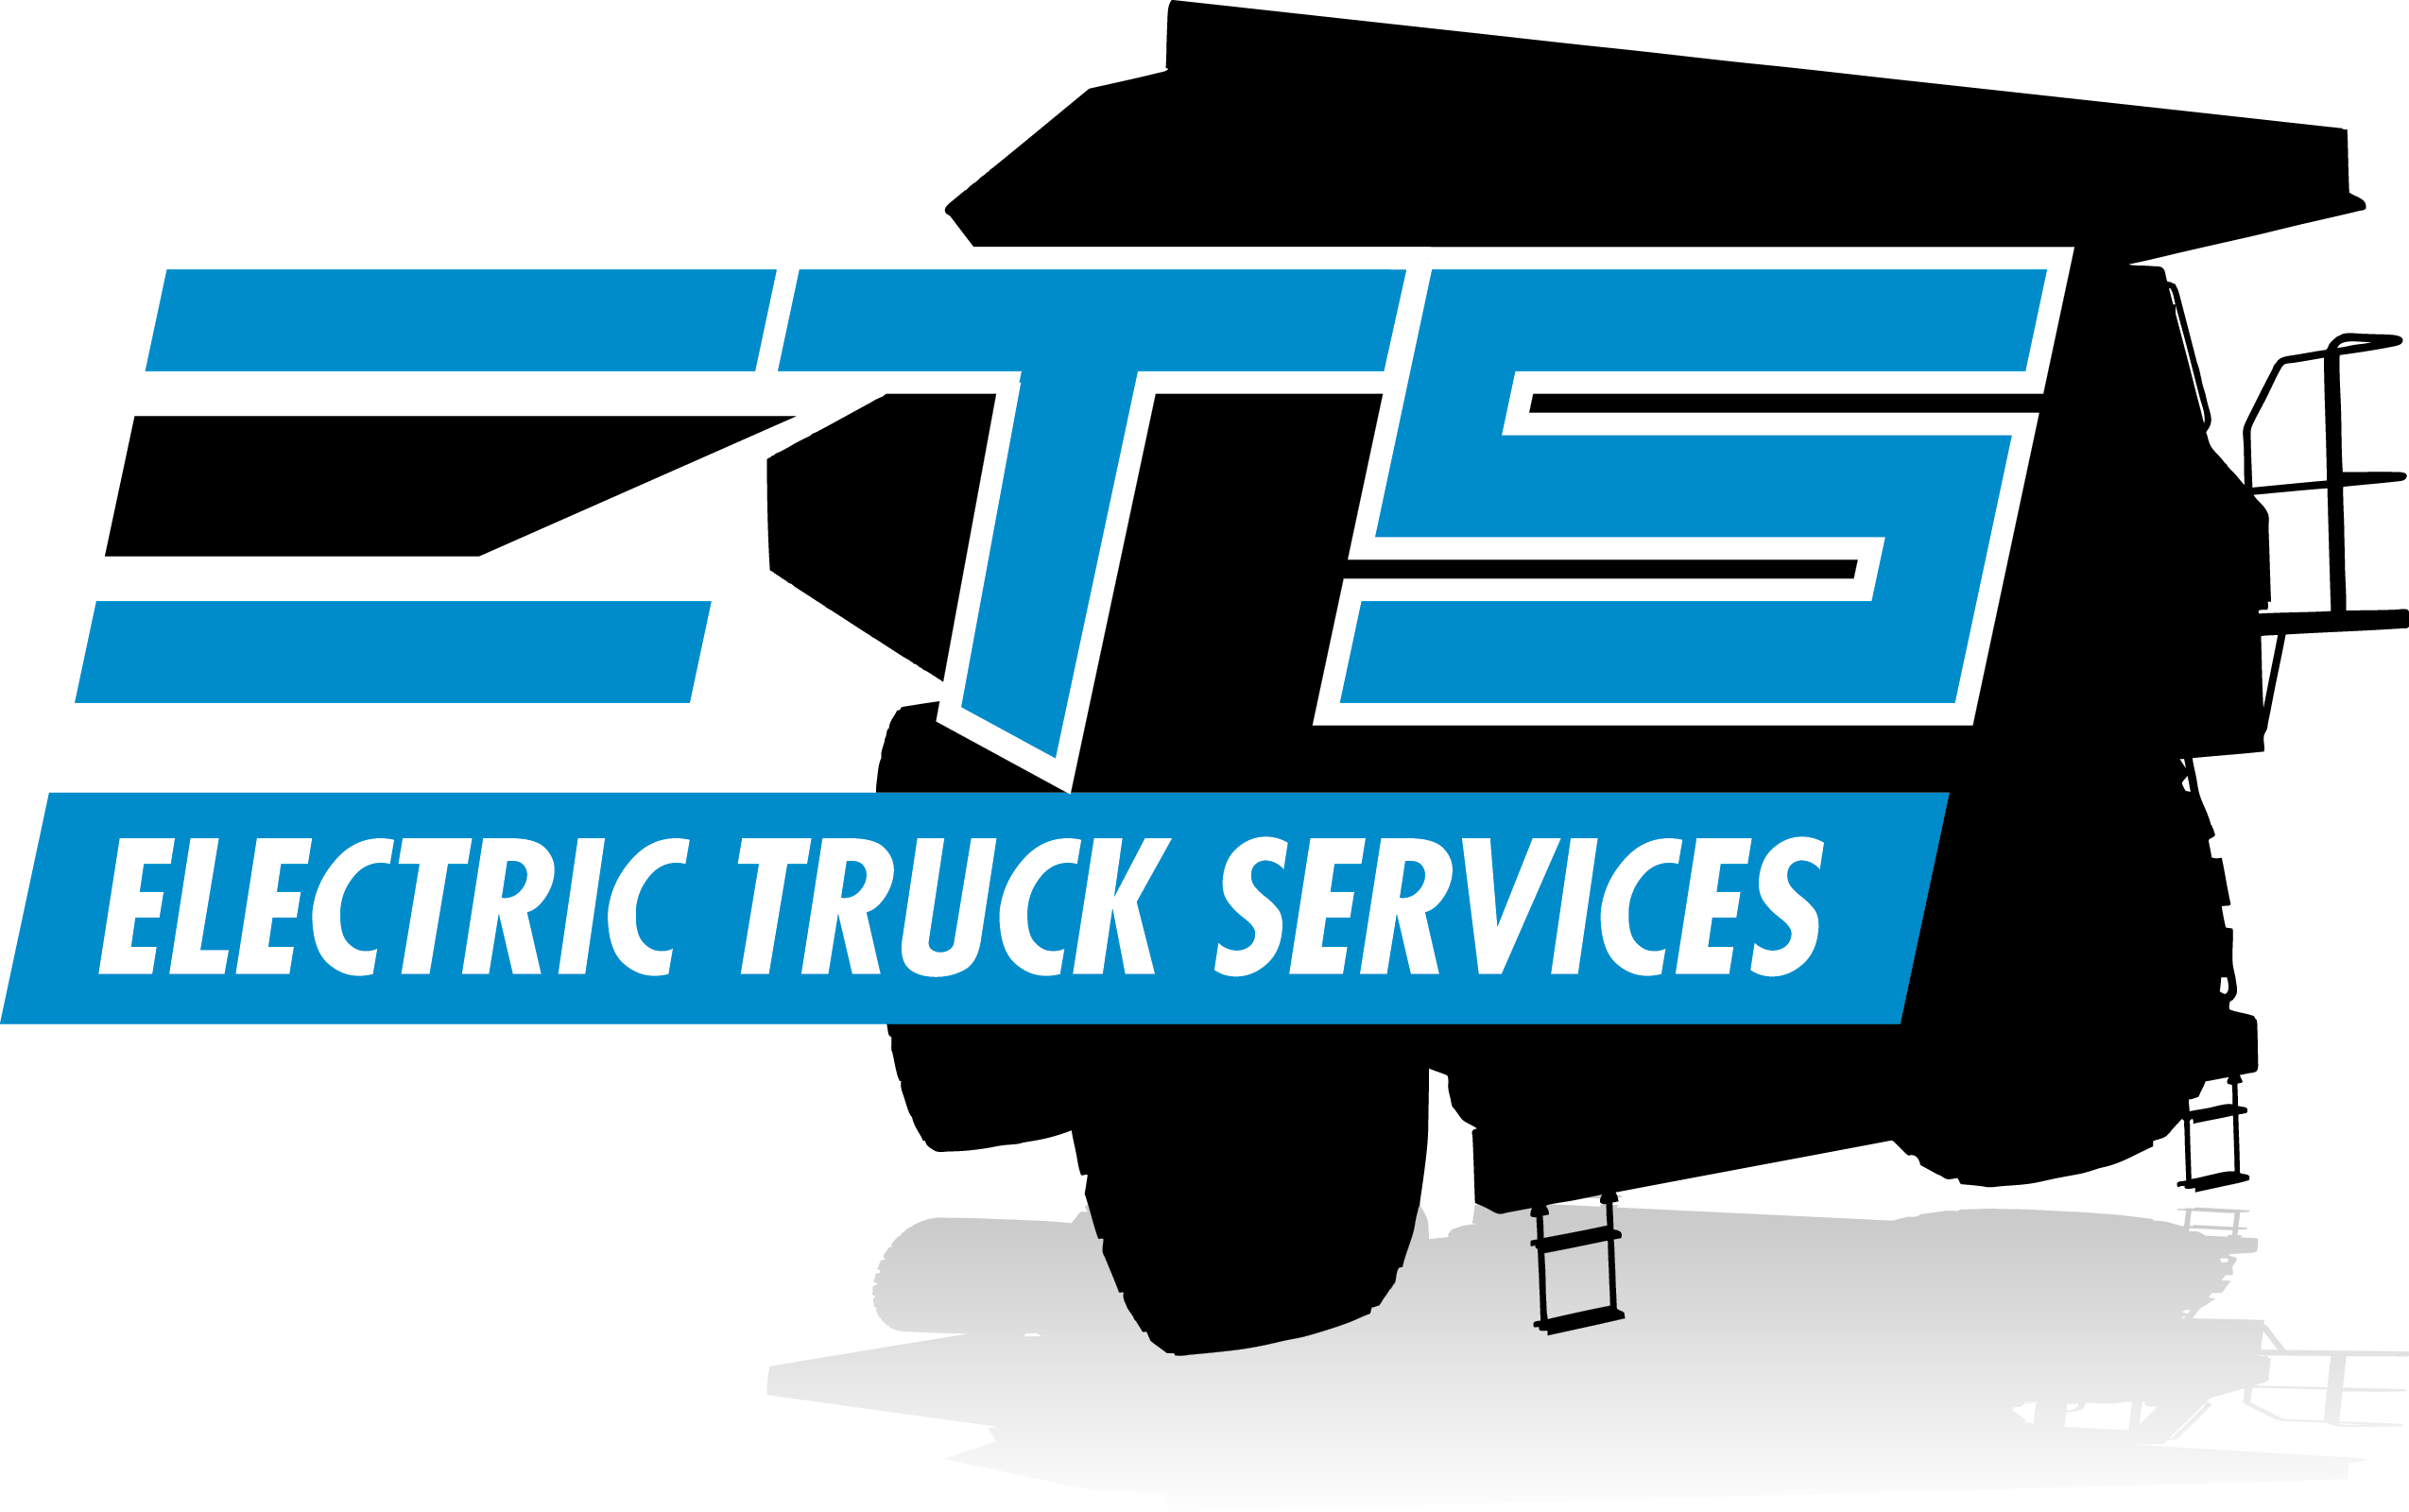 Electric Truck Services